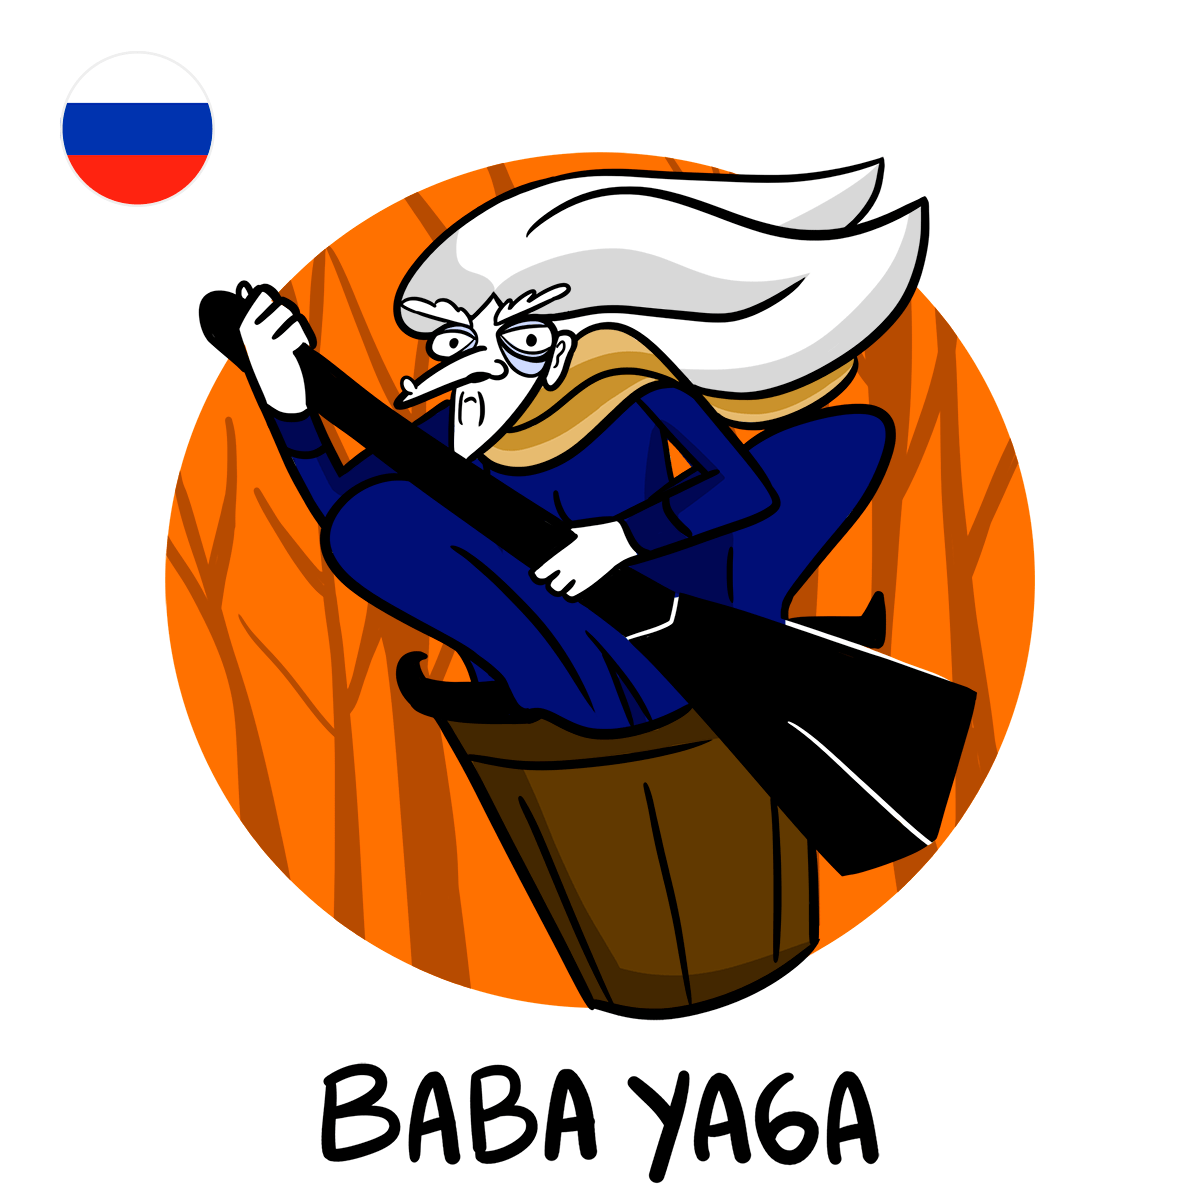 illustration Baba Yaga, a witch with a broomstick